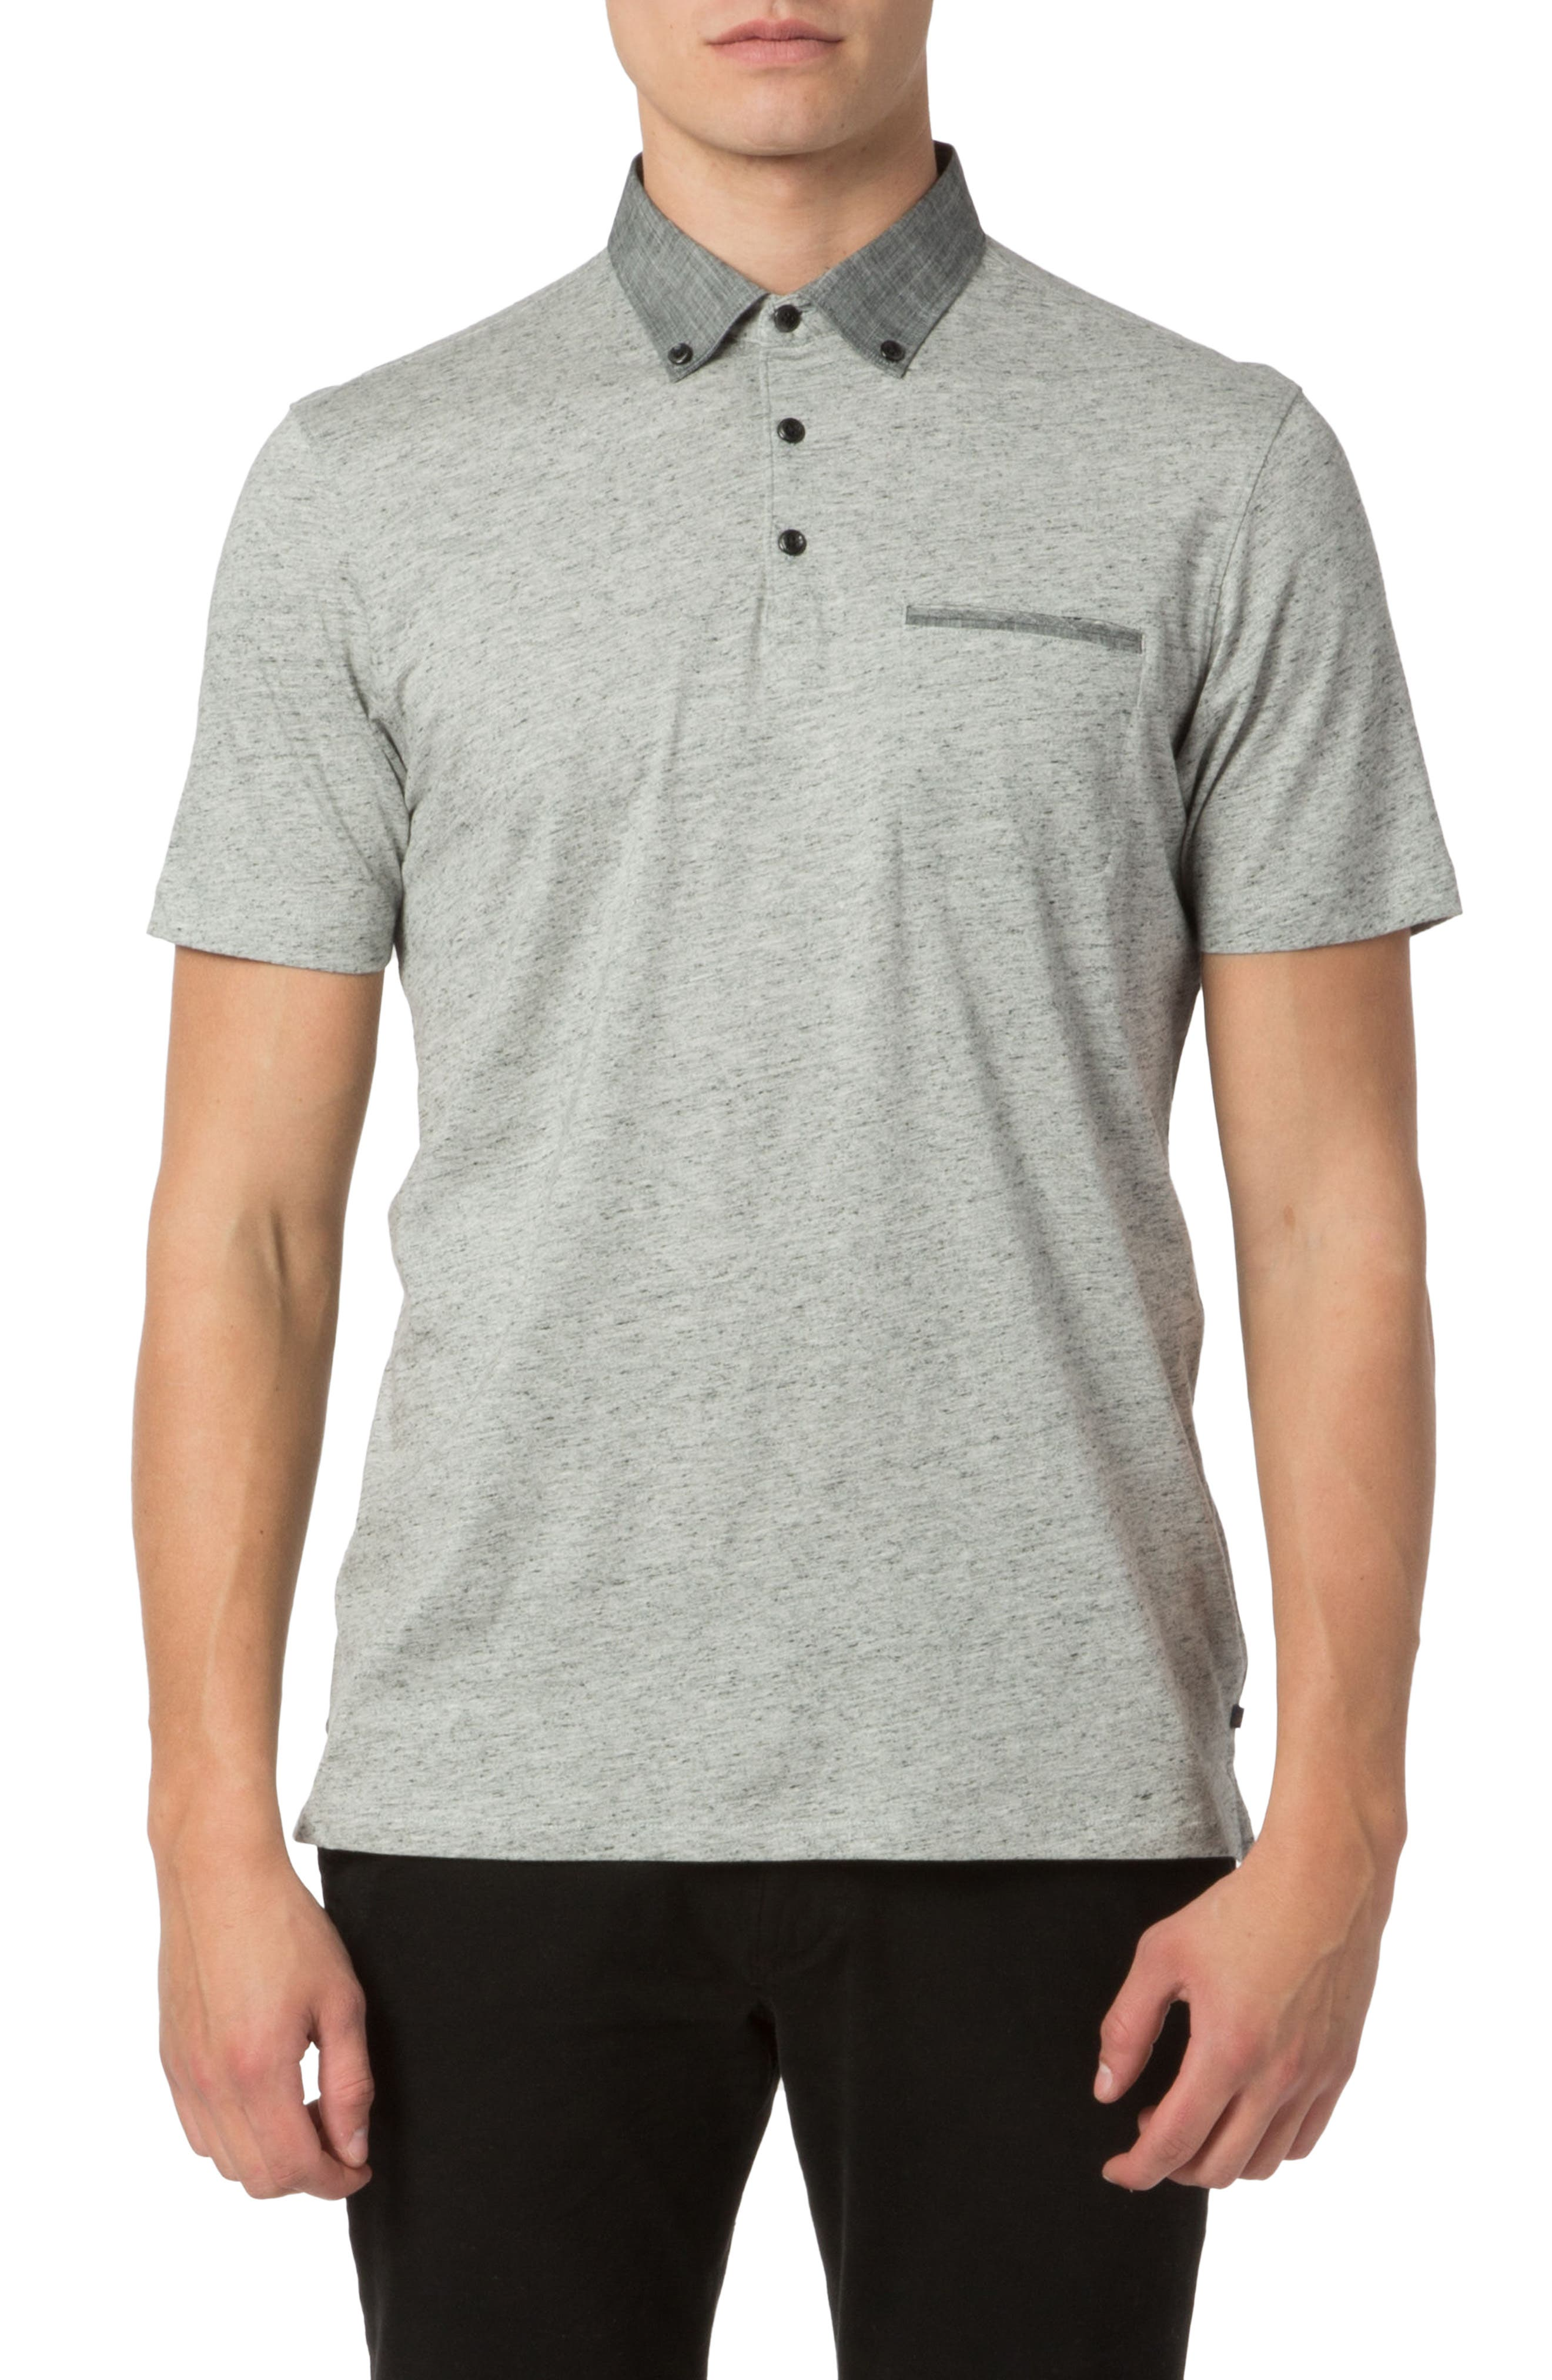 Alternate Image 1 Selected - Good Man Brand Soft Jersey Polo